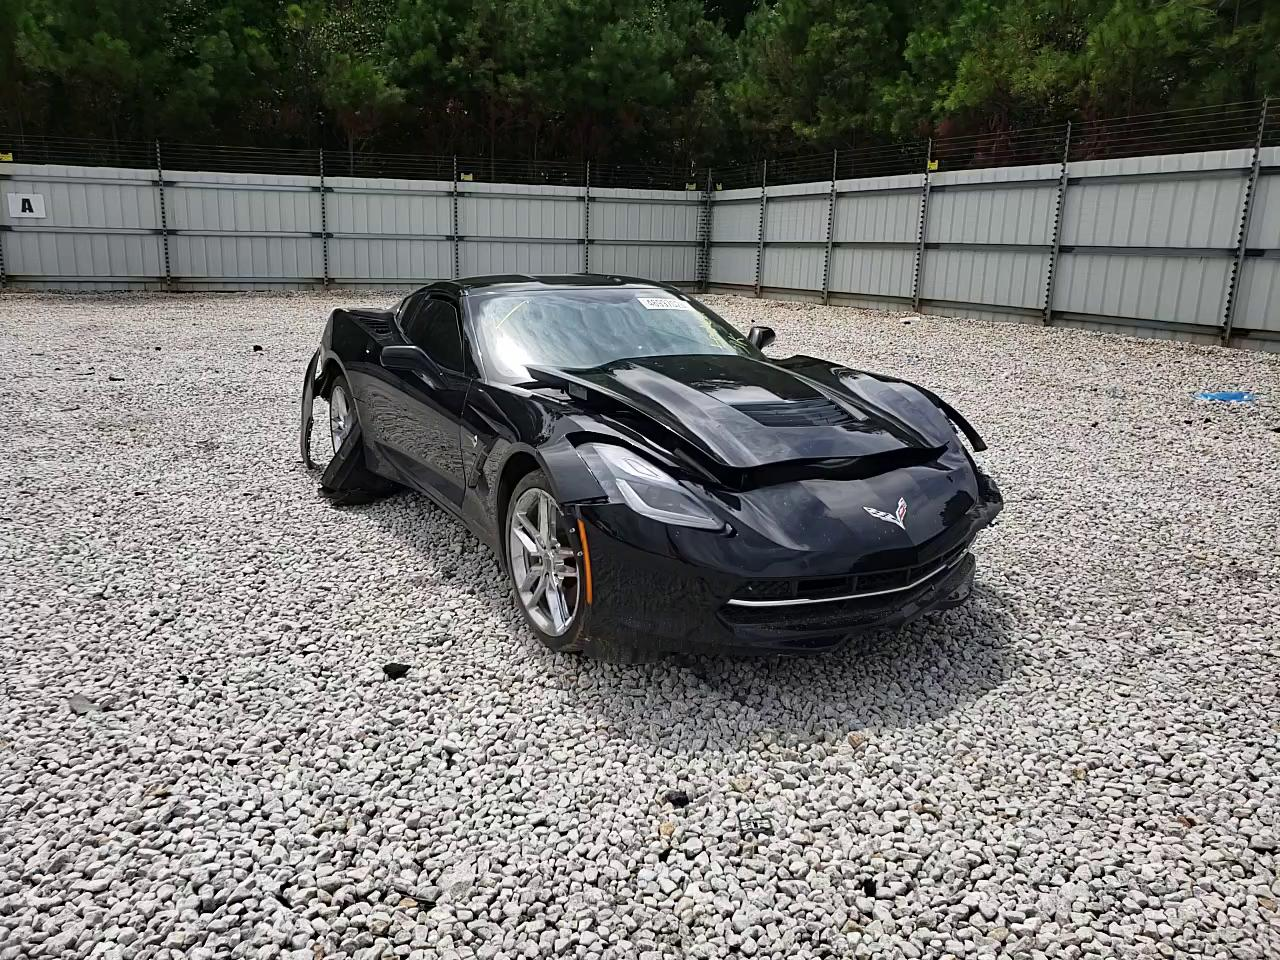 2017 Chevrolet Corvette S for sale in Ellenwood, GA